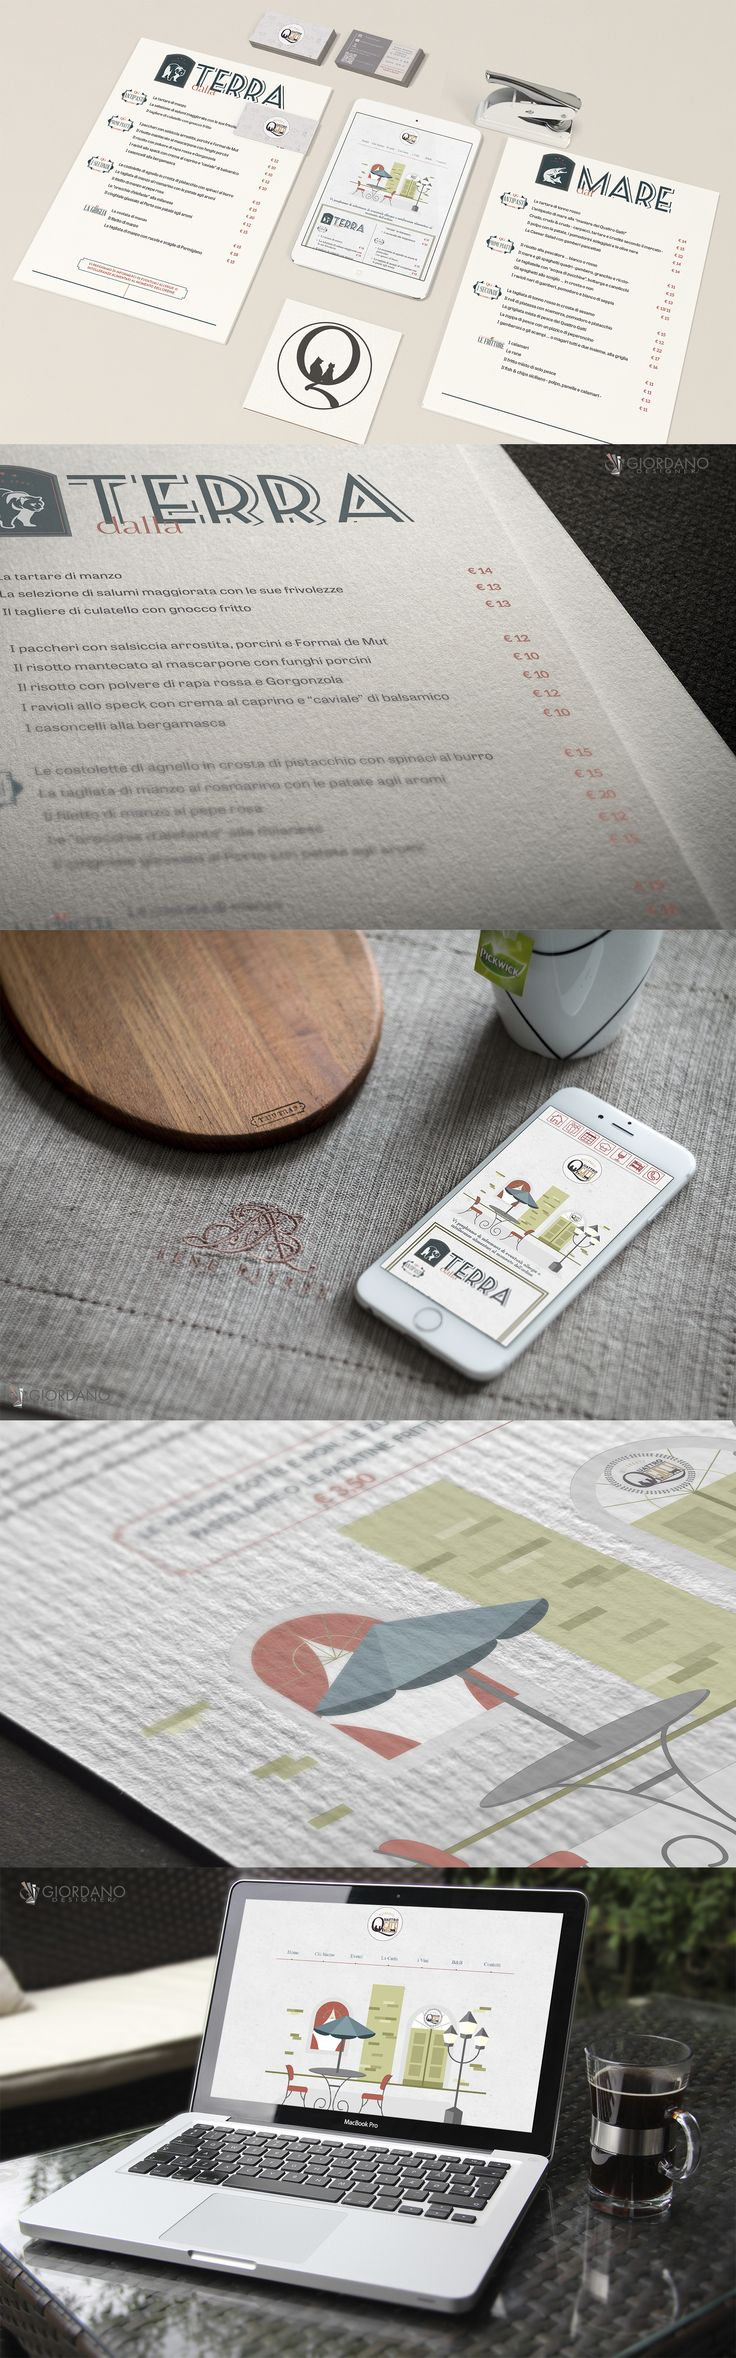 Ready new Menu for Il Quattro Gatti Restaurant, printing on cardboard 180 gr - tri fold and web page enjoyable also from smartphones and tablets.  #Branding #WebDesign #GraphicDesign #Typography #MobileFriendly #UserExperience #WebDeveloper #ResponsiveDesign #Printing #Restaurant #Food #Pranzo #Ristorante #Restaurants #Buonappetito #Dinner #Foodie #Brunch #Dishes #Wine